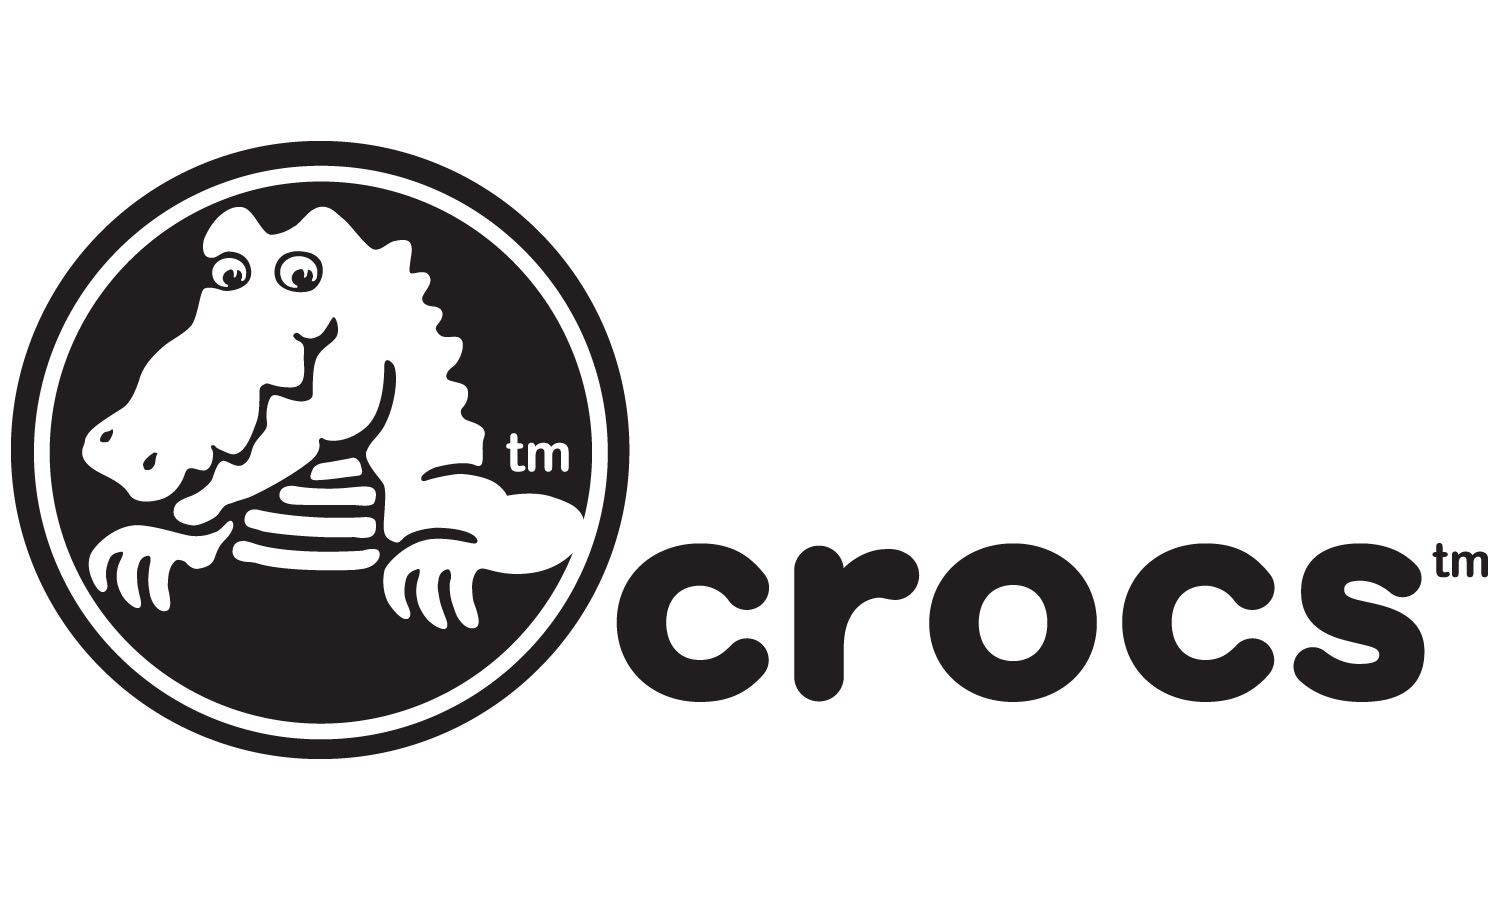 Sign Up To The Crocs Newsletter And Get 15 Off Your First